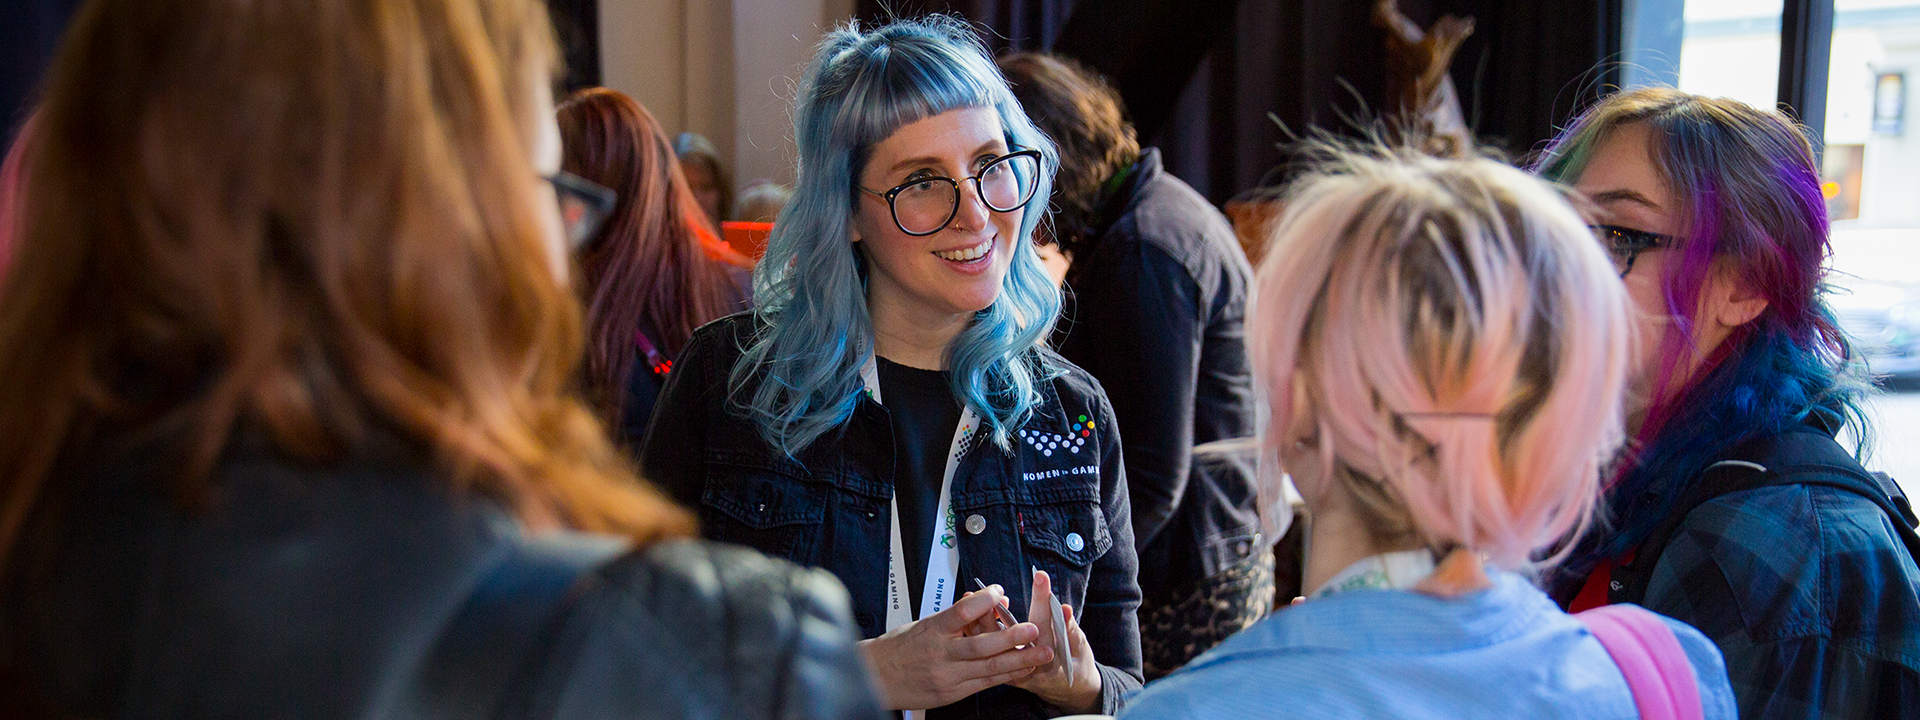 Women from the gaming industry attend a community event